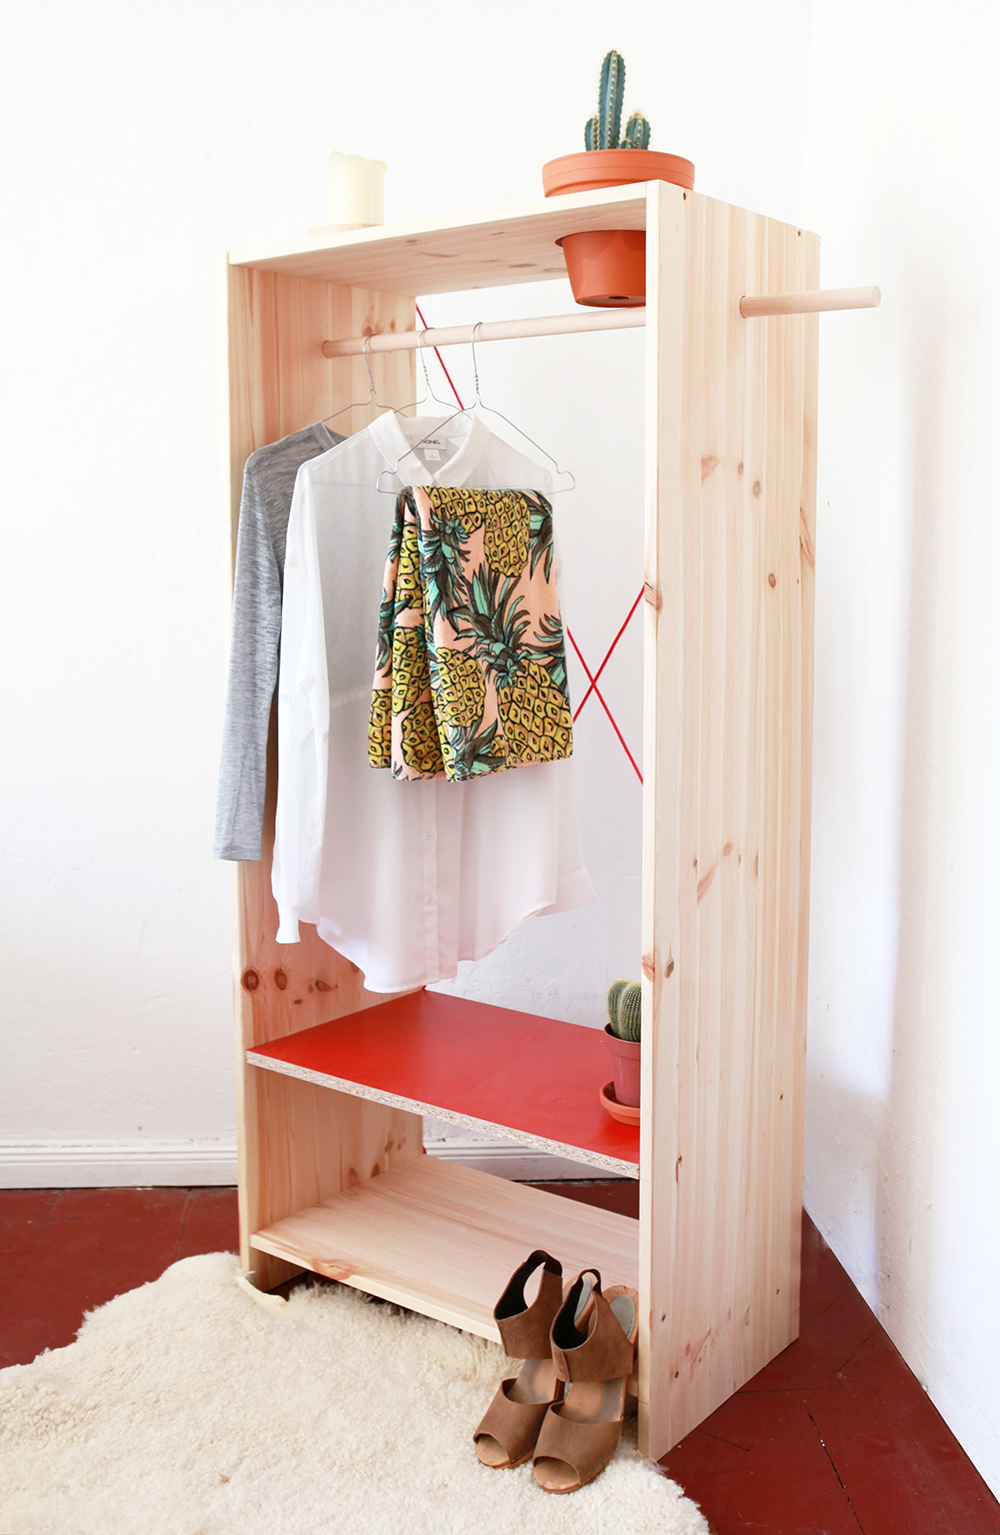 Diy planter closet coco lapine designcoco lapine design for Garderobe como